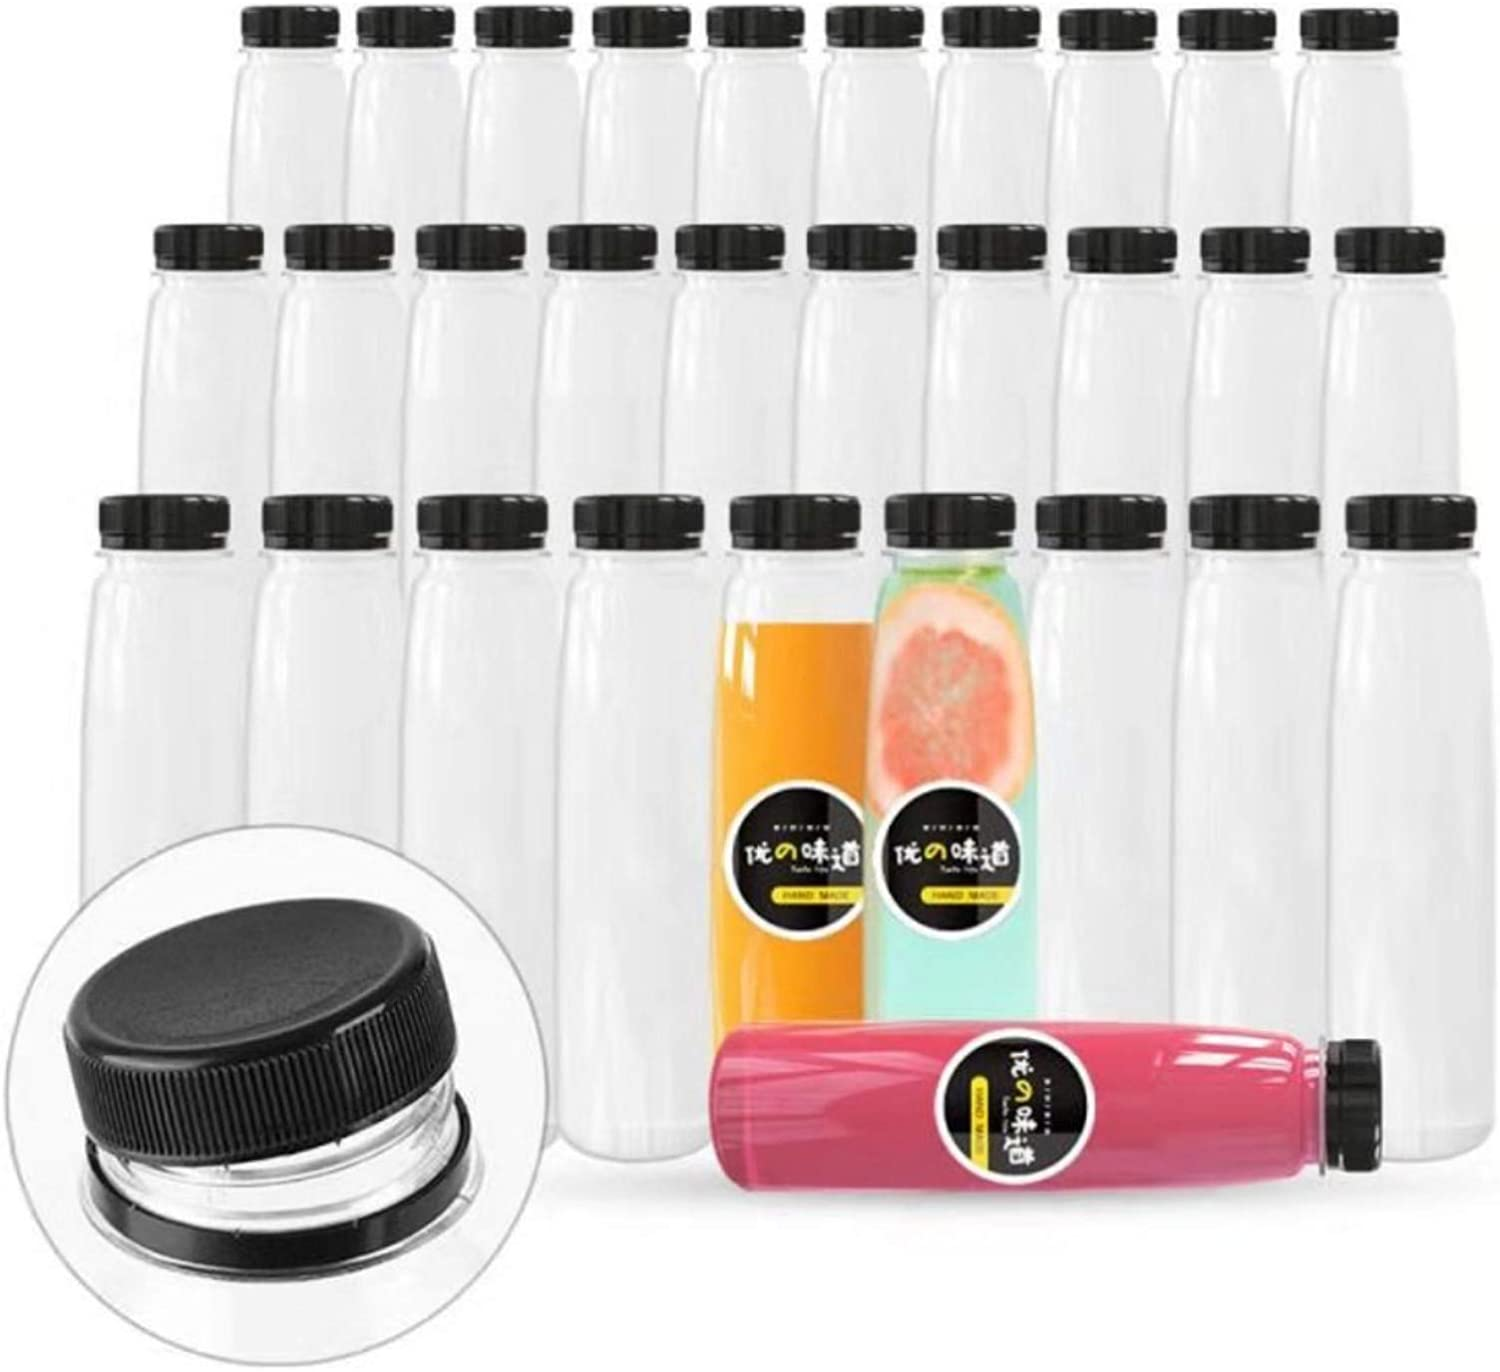 36 Pack Empty PET Plastic Juice Bottles 12 OZ Clear Disposable Bulk Drink Bottles with Black Tamper Evident Caps Lids (12 OZ, Black)